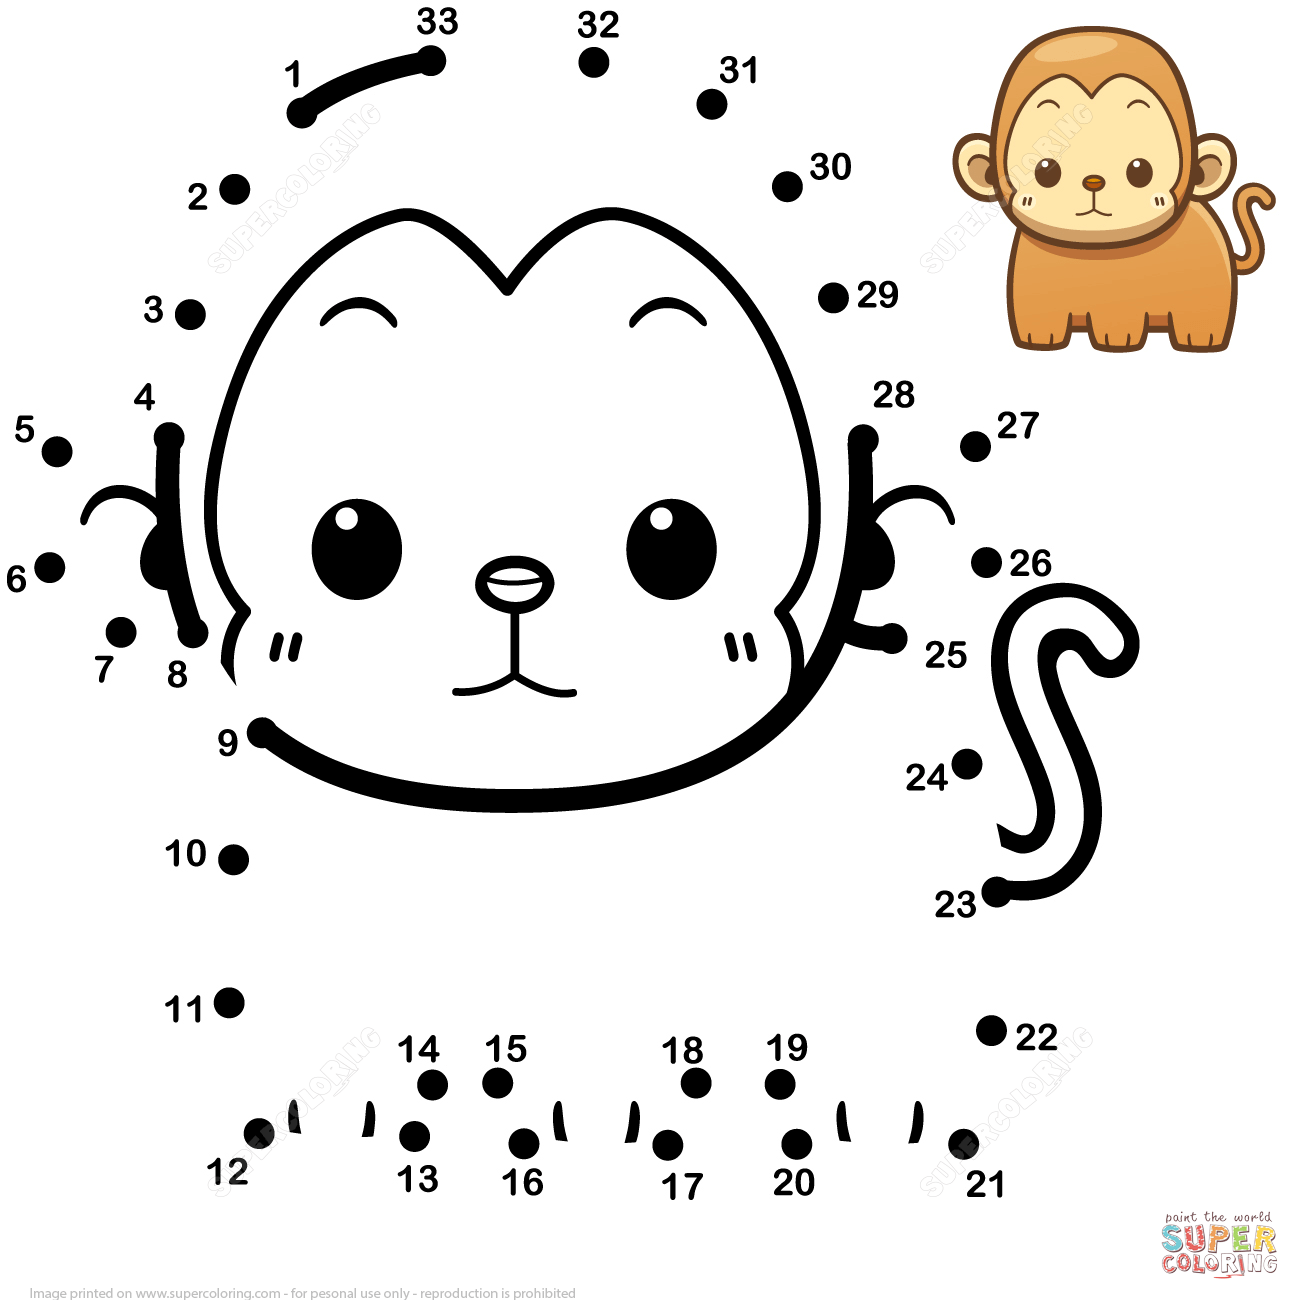 Cute Baby Monkey Dot To Dot